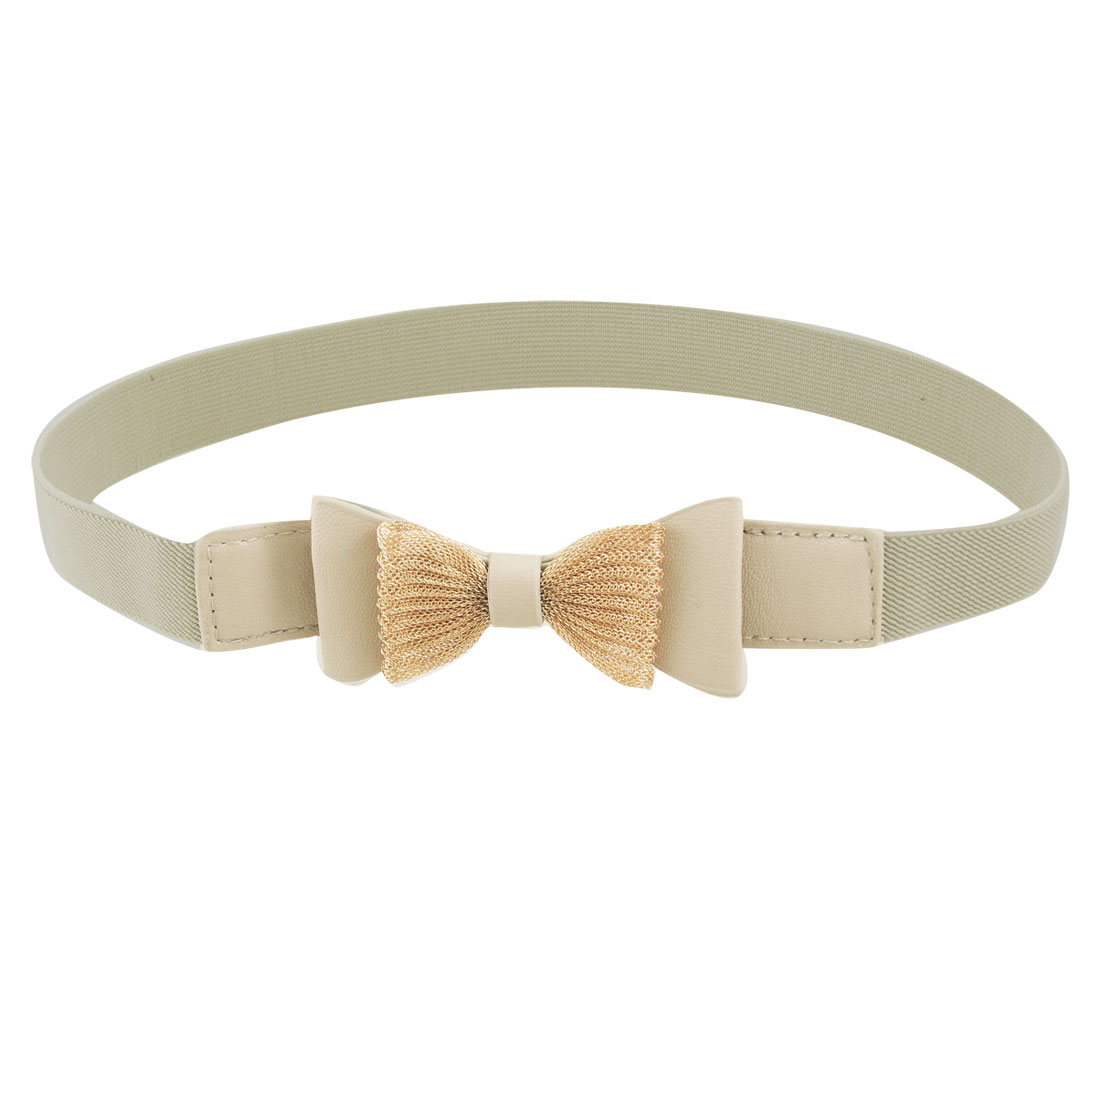 "Lady Faux Leather Bowtie Decor 1"" Width Khaki Elastic Cinch Belt"